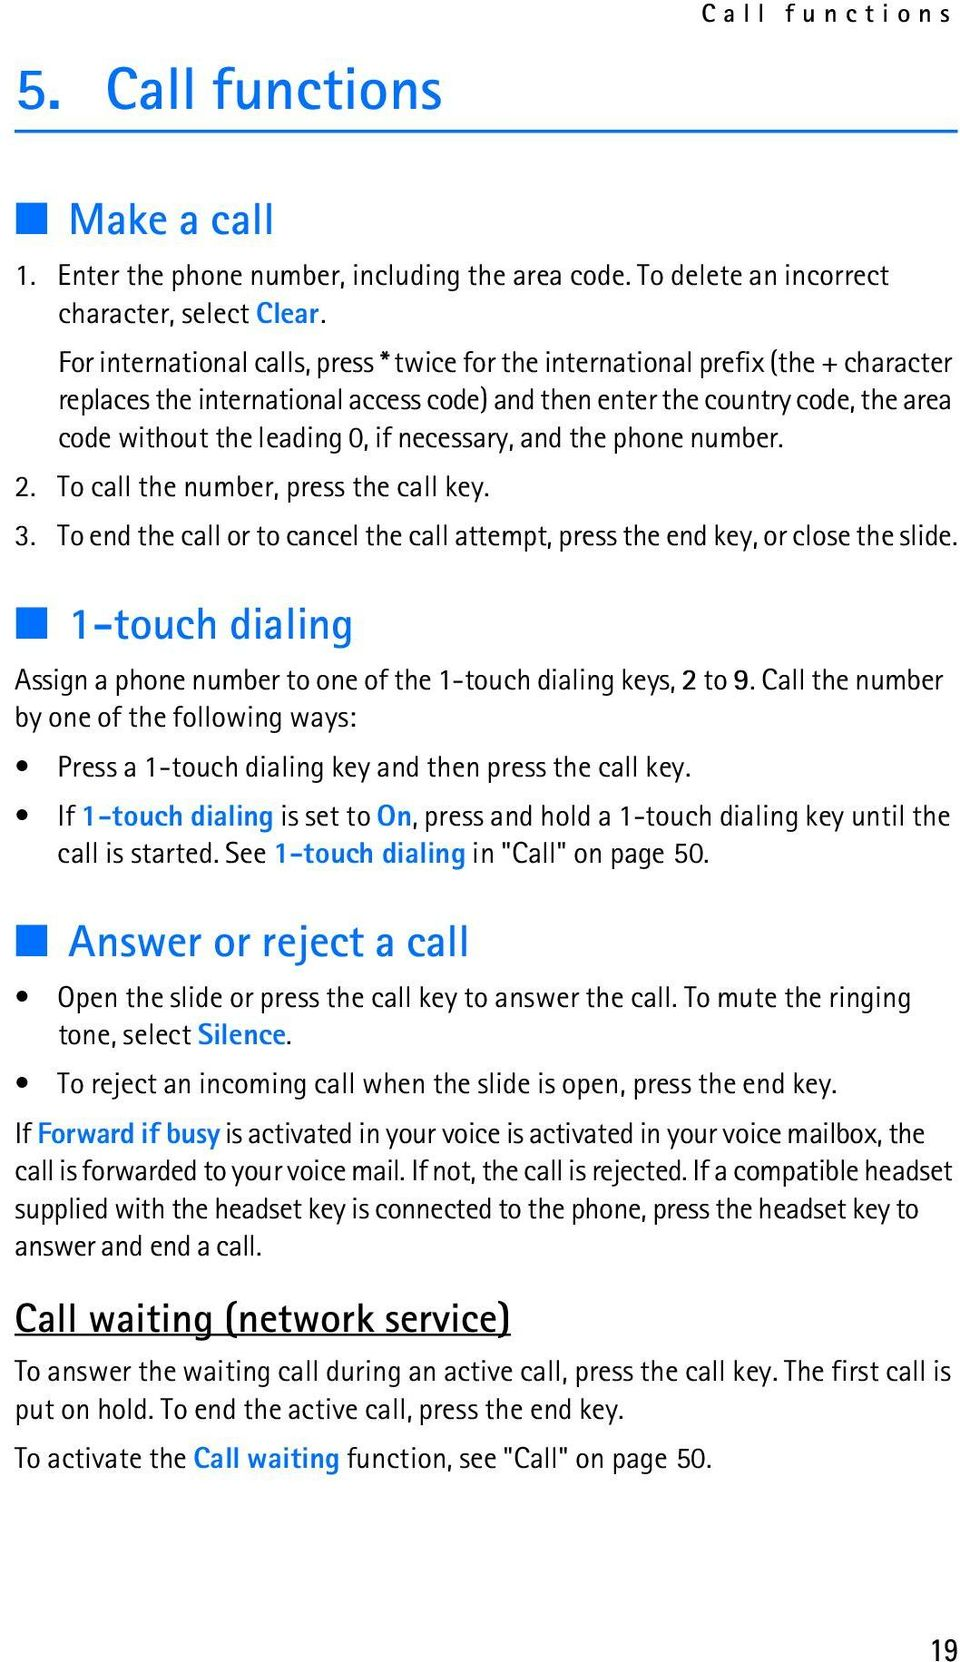 necessary, and the phone number. 2. To call the number, press the call key. 3. To end the call or to cancel the call attempt, press the end key, or close the slide.